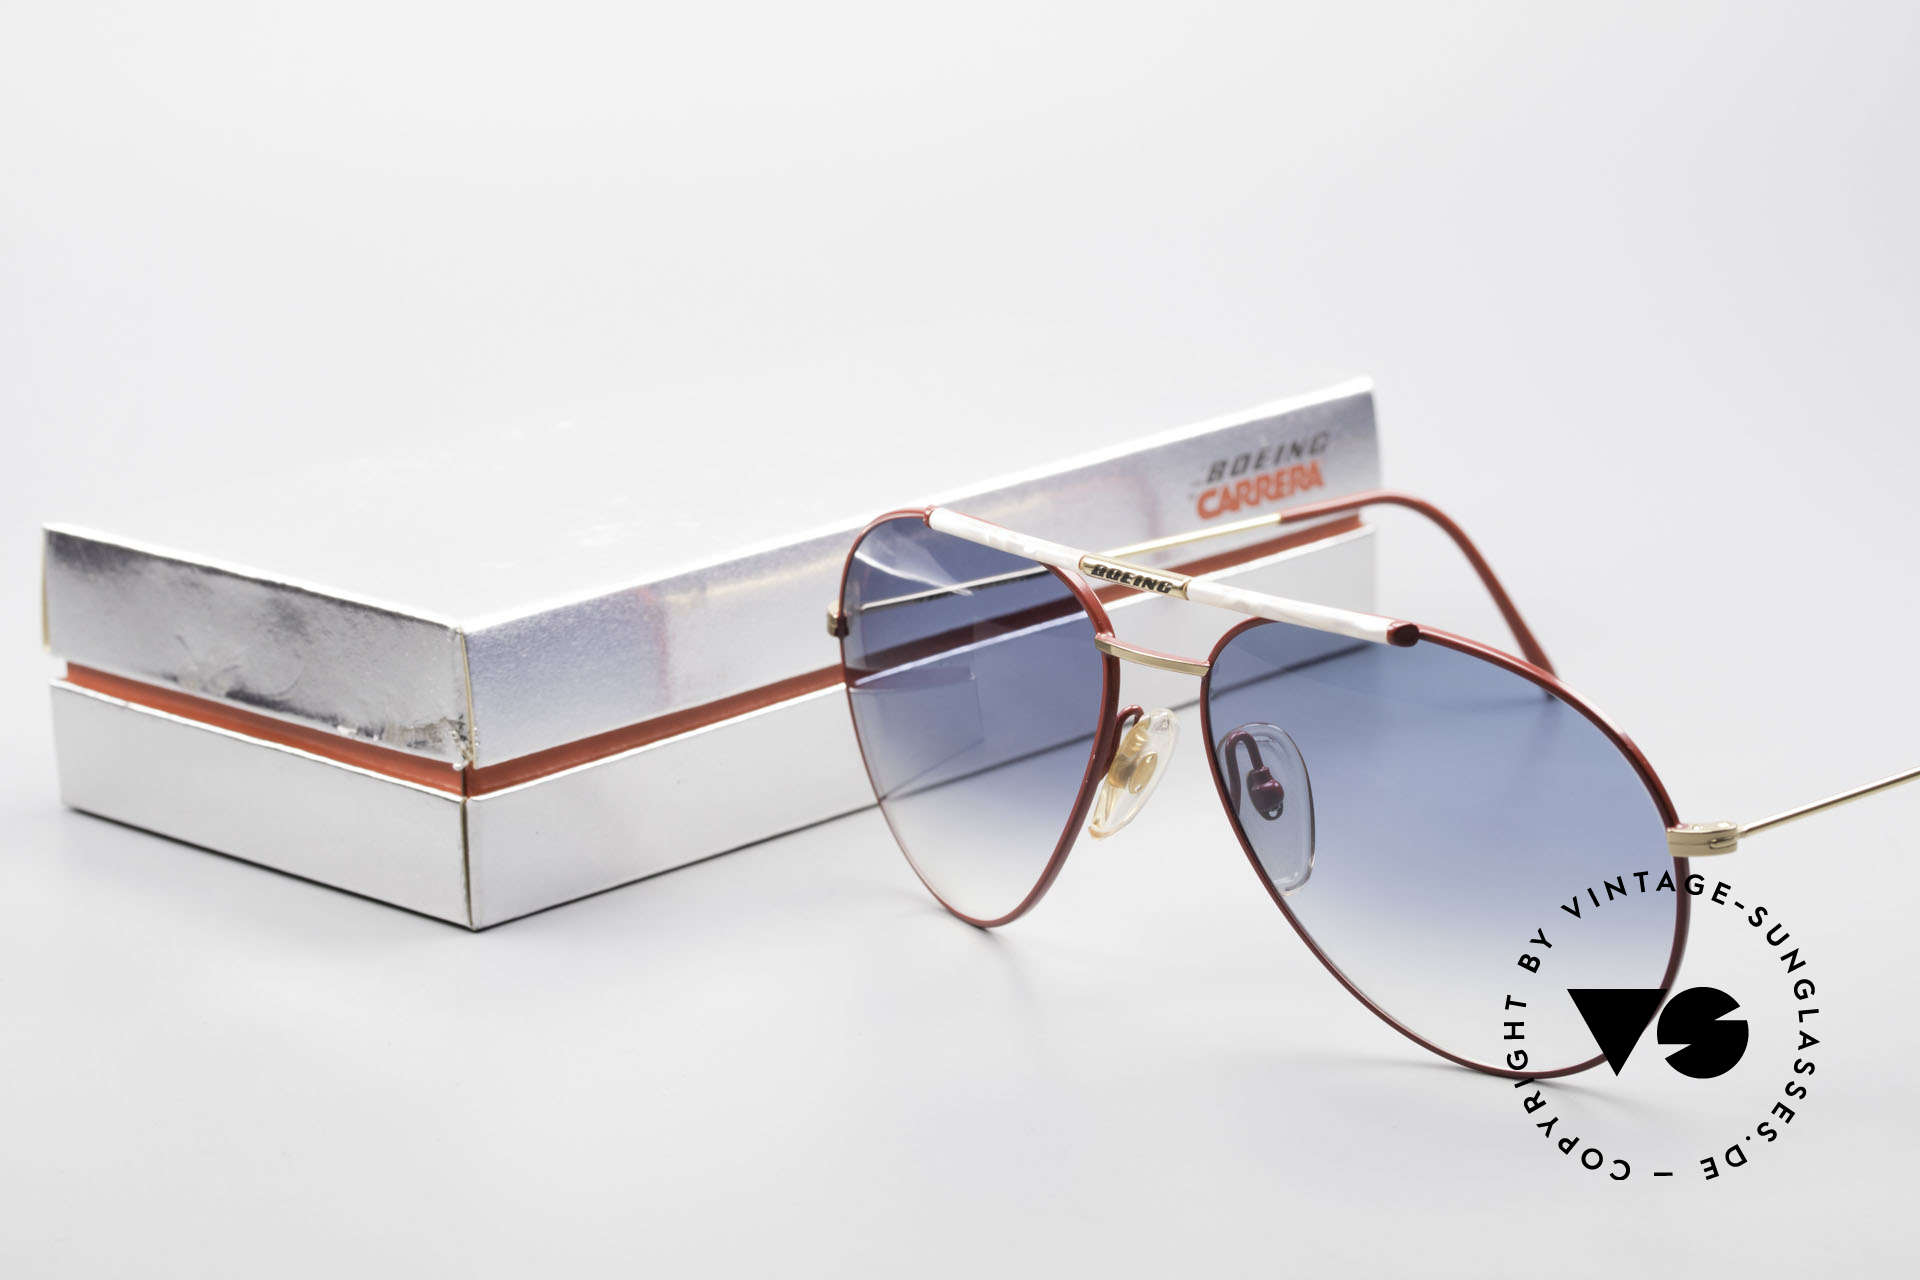 Boeing 5706 No Retro Sunglasses Vintage, Size: large, Made for Men and Women